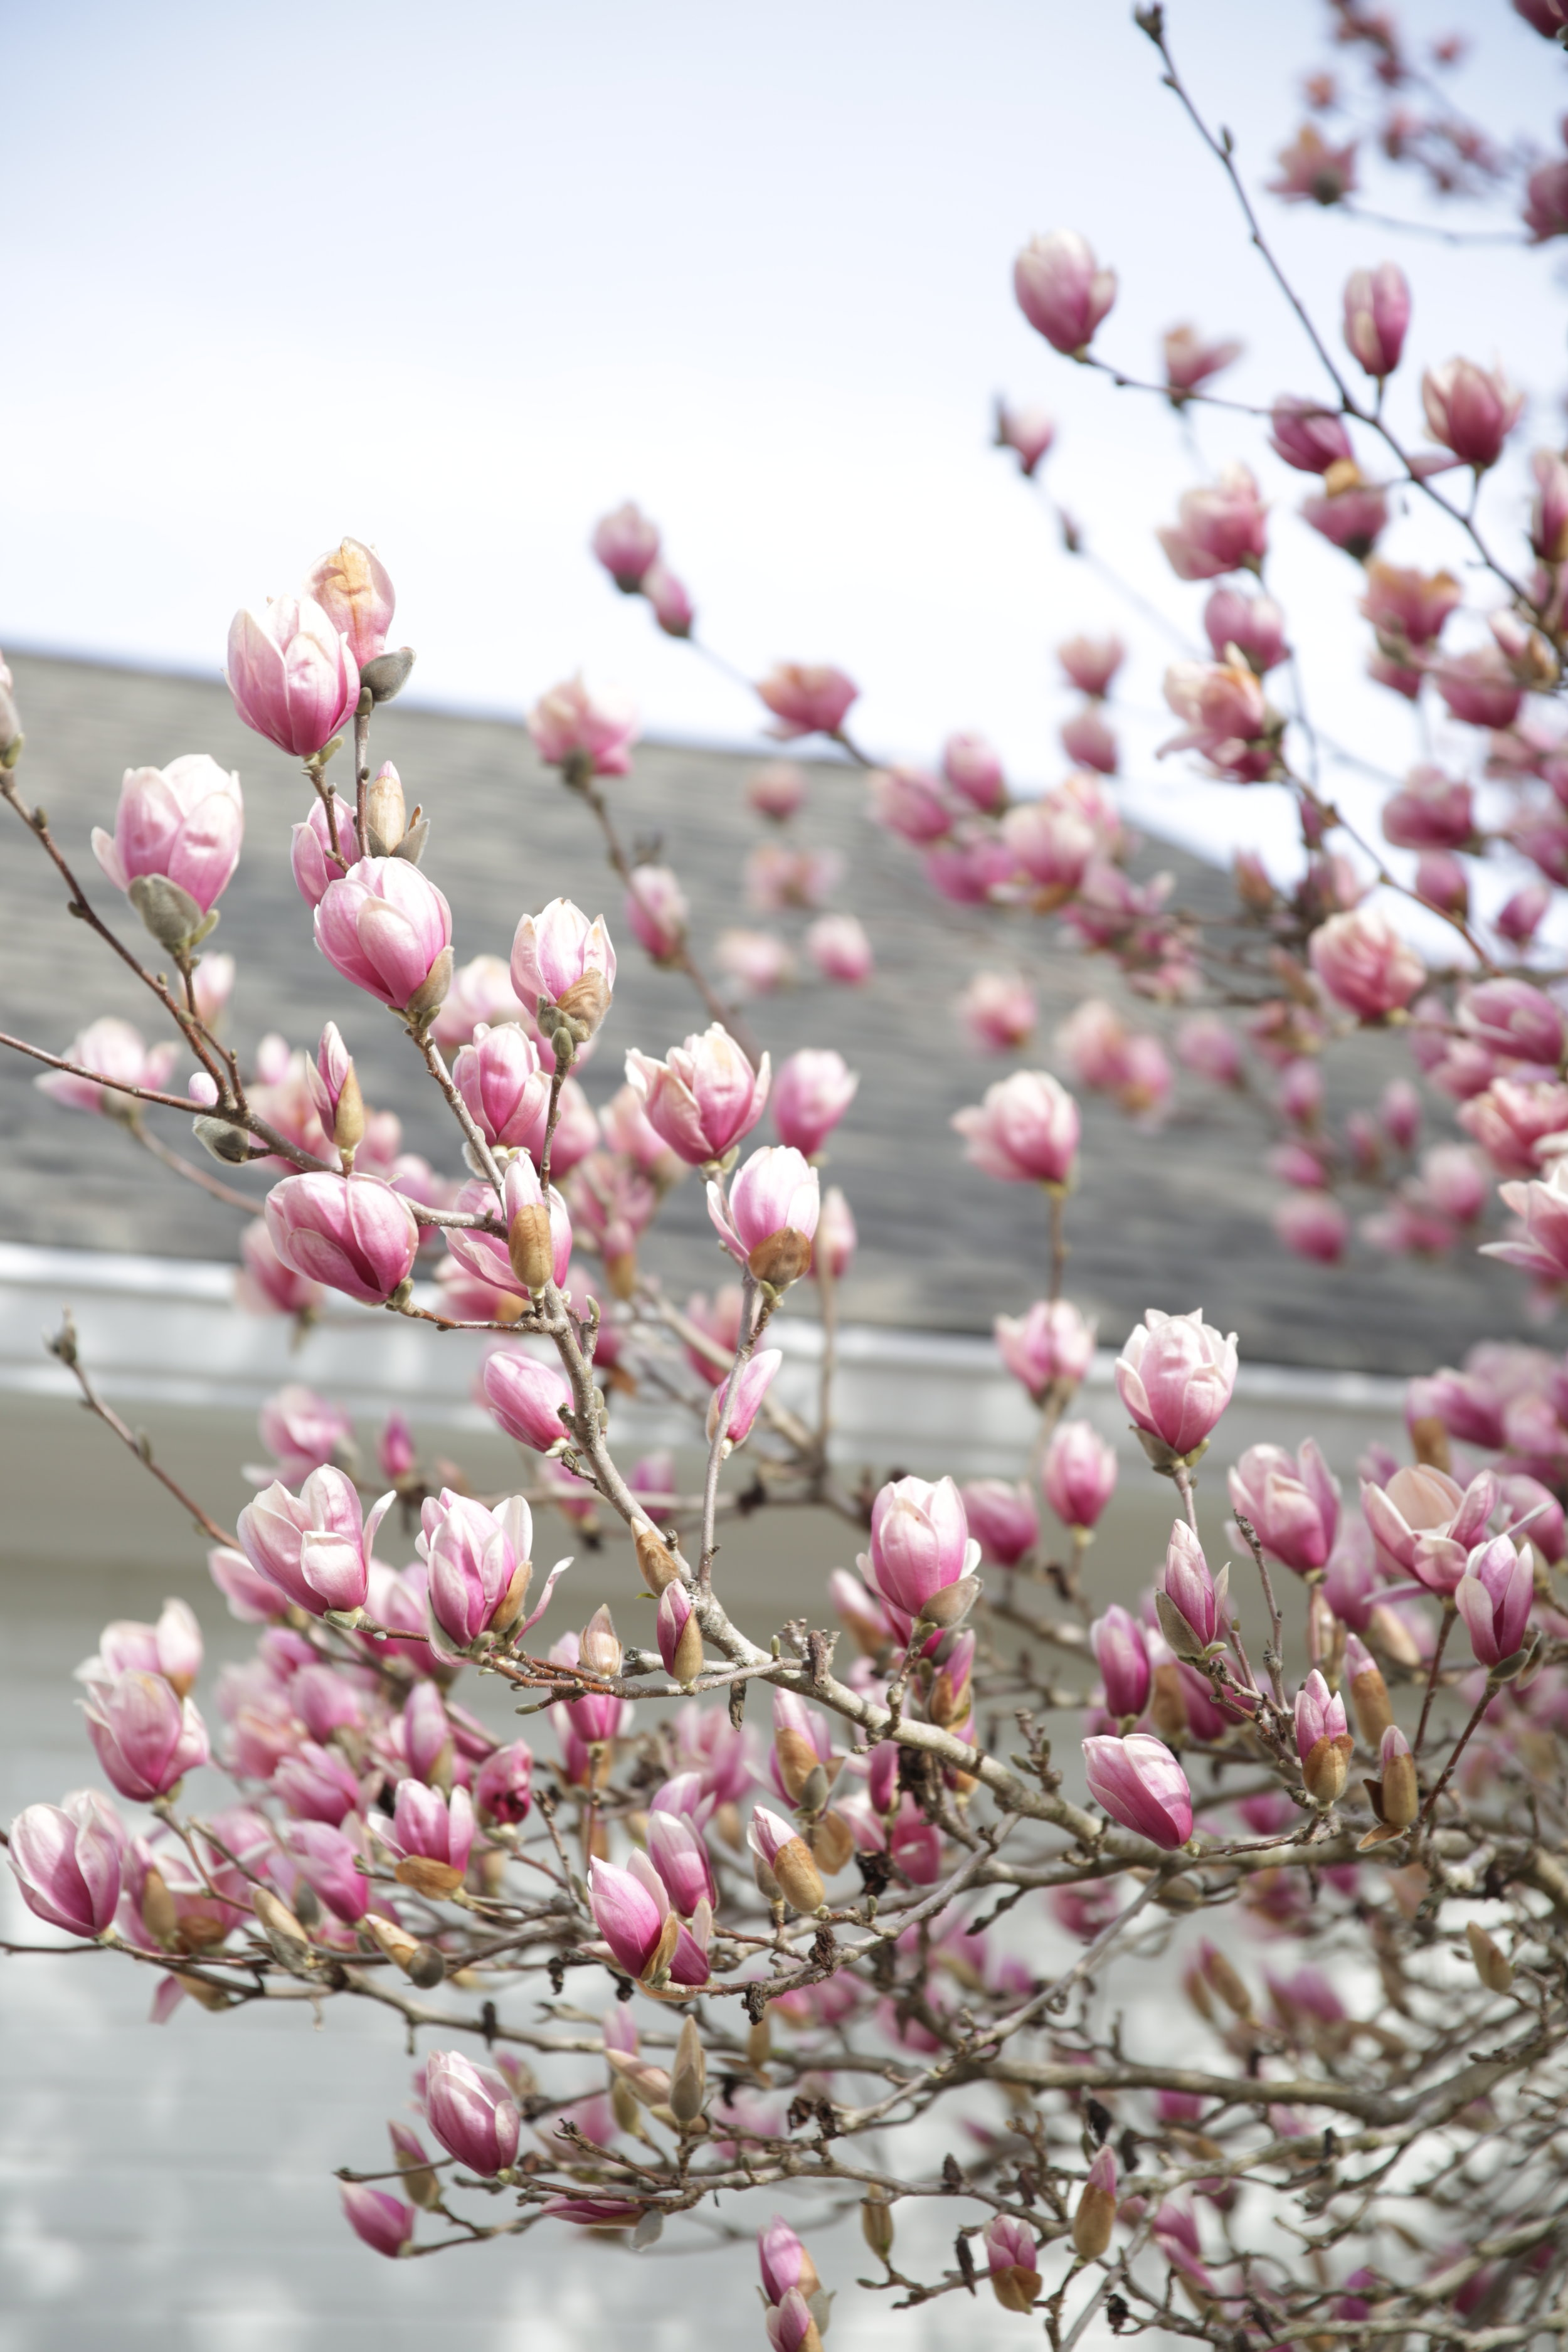 Our flowering magnolia tree started blooming last month!